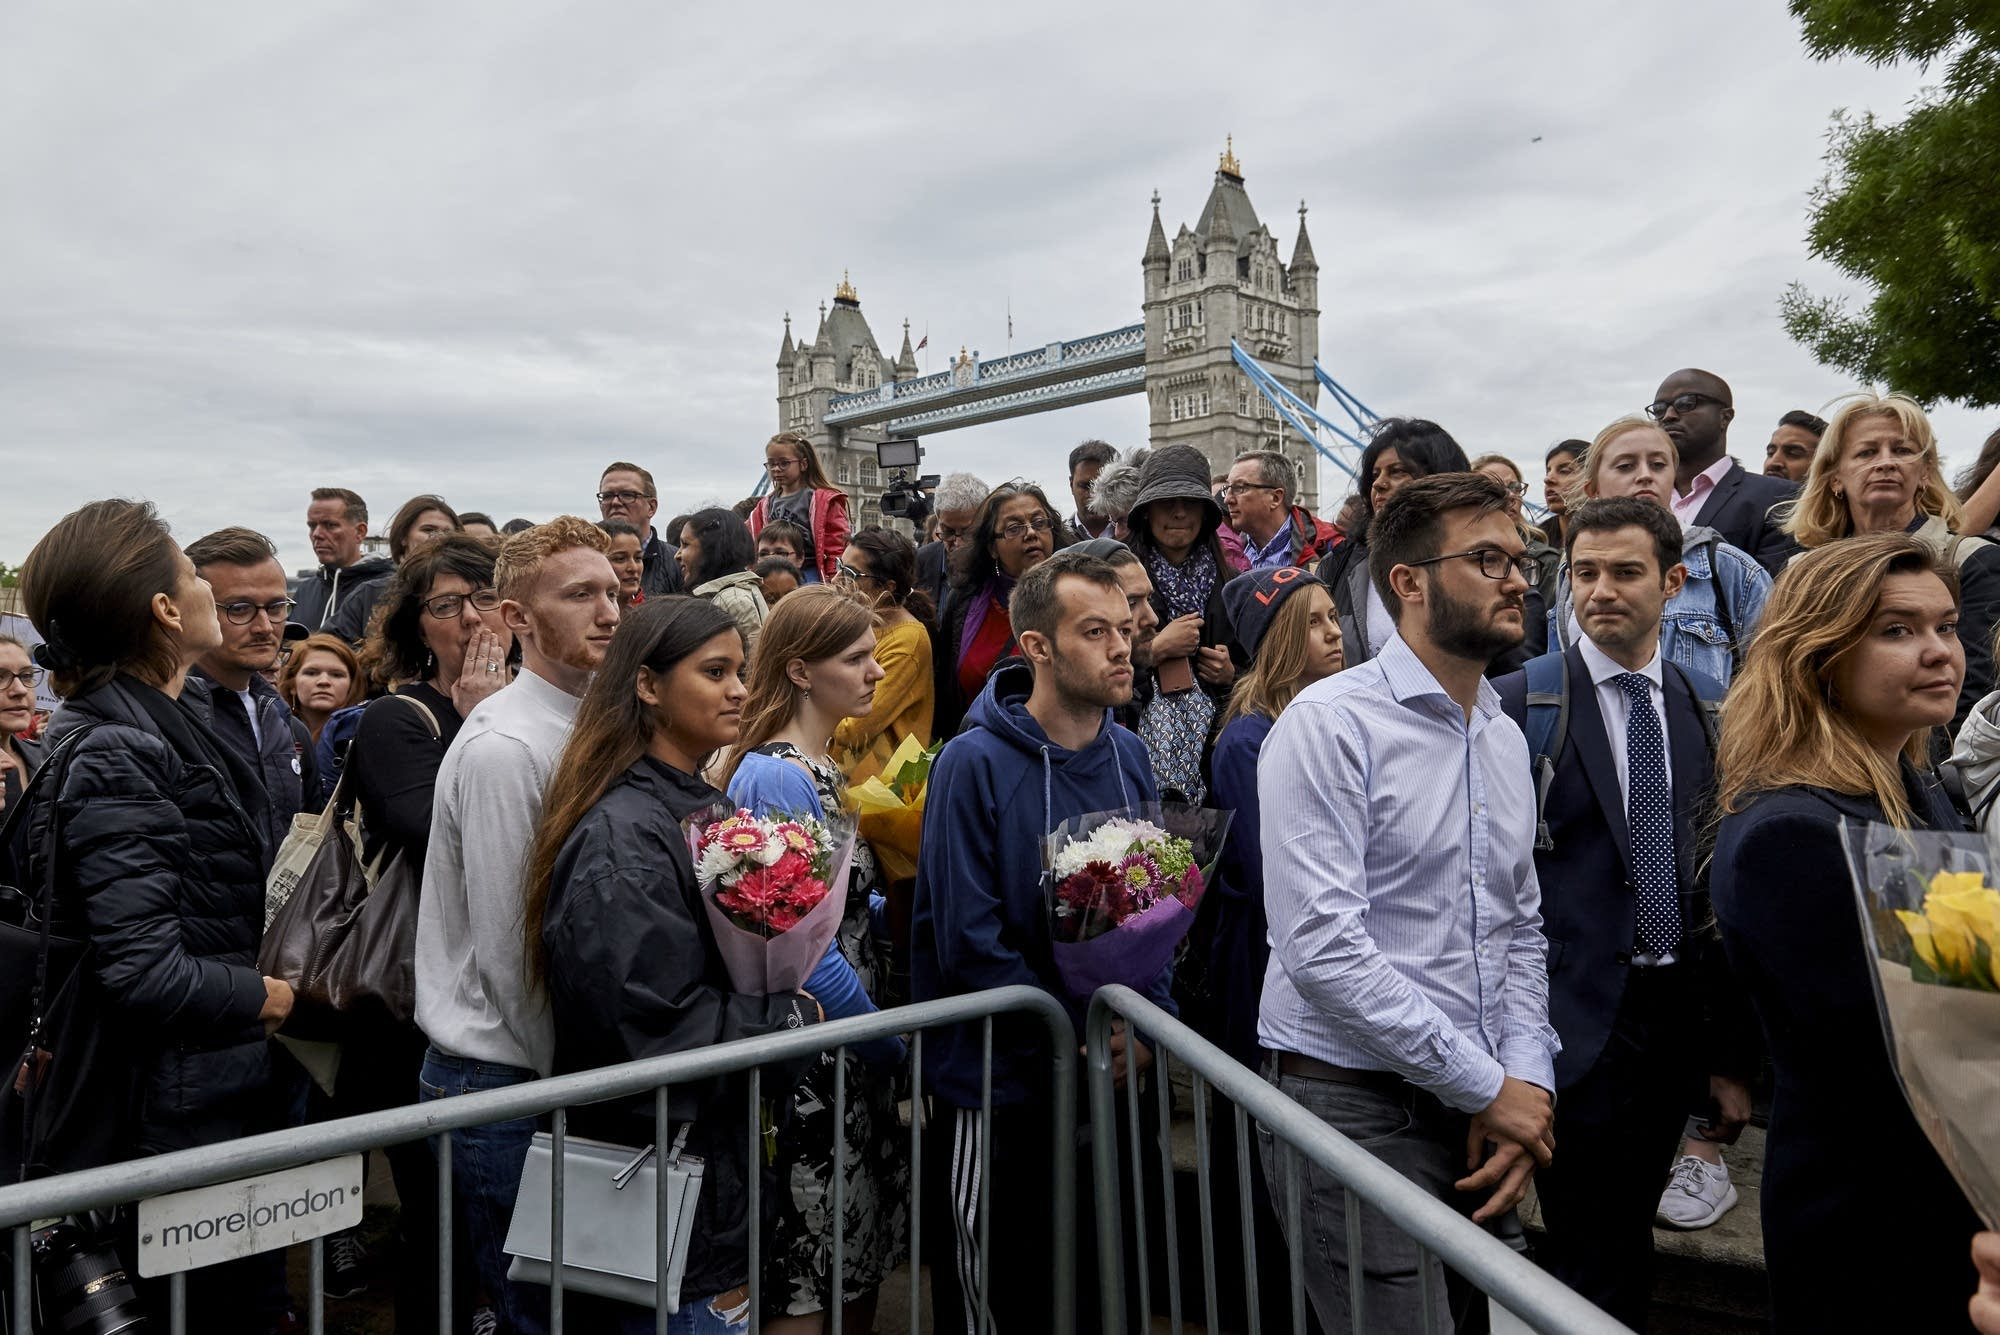 British police arrest seventh man in London Bridge attack probe